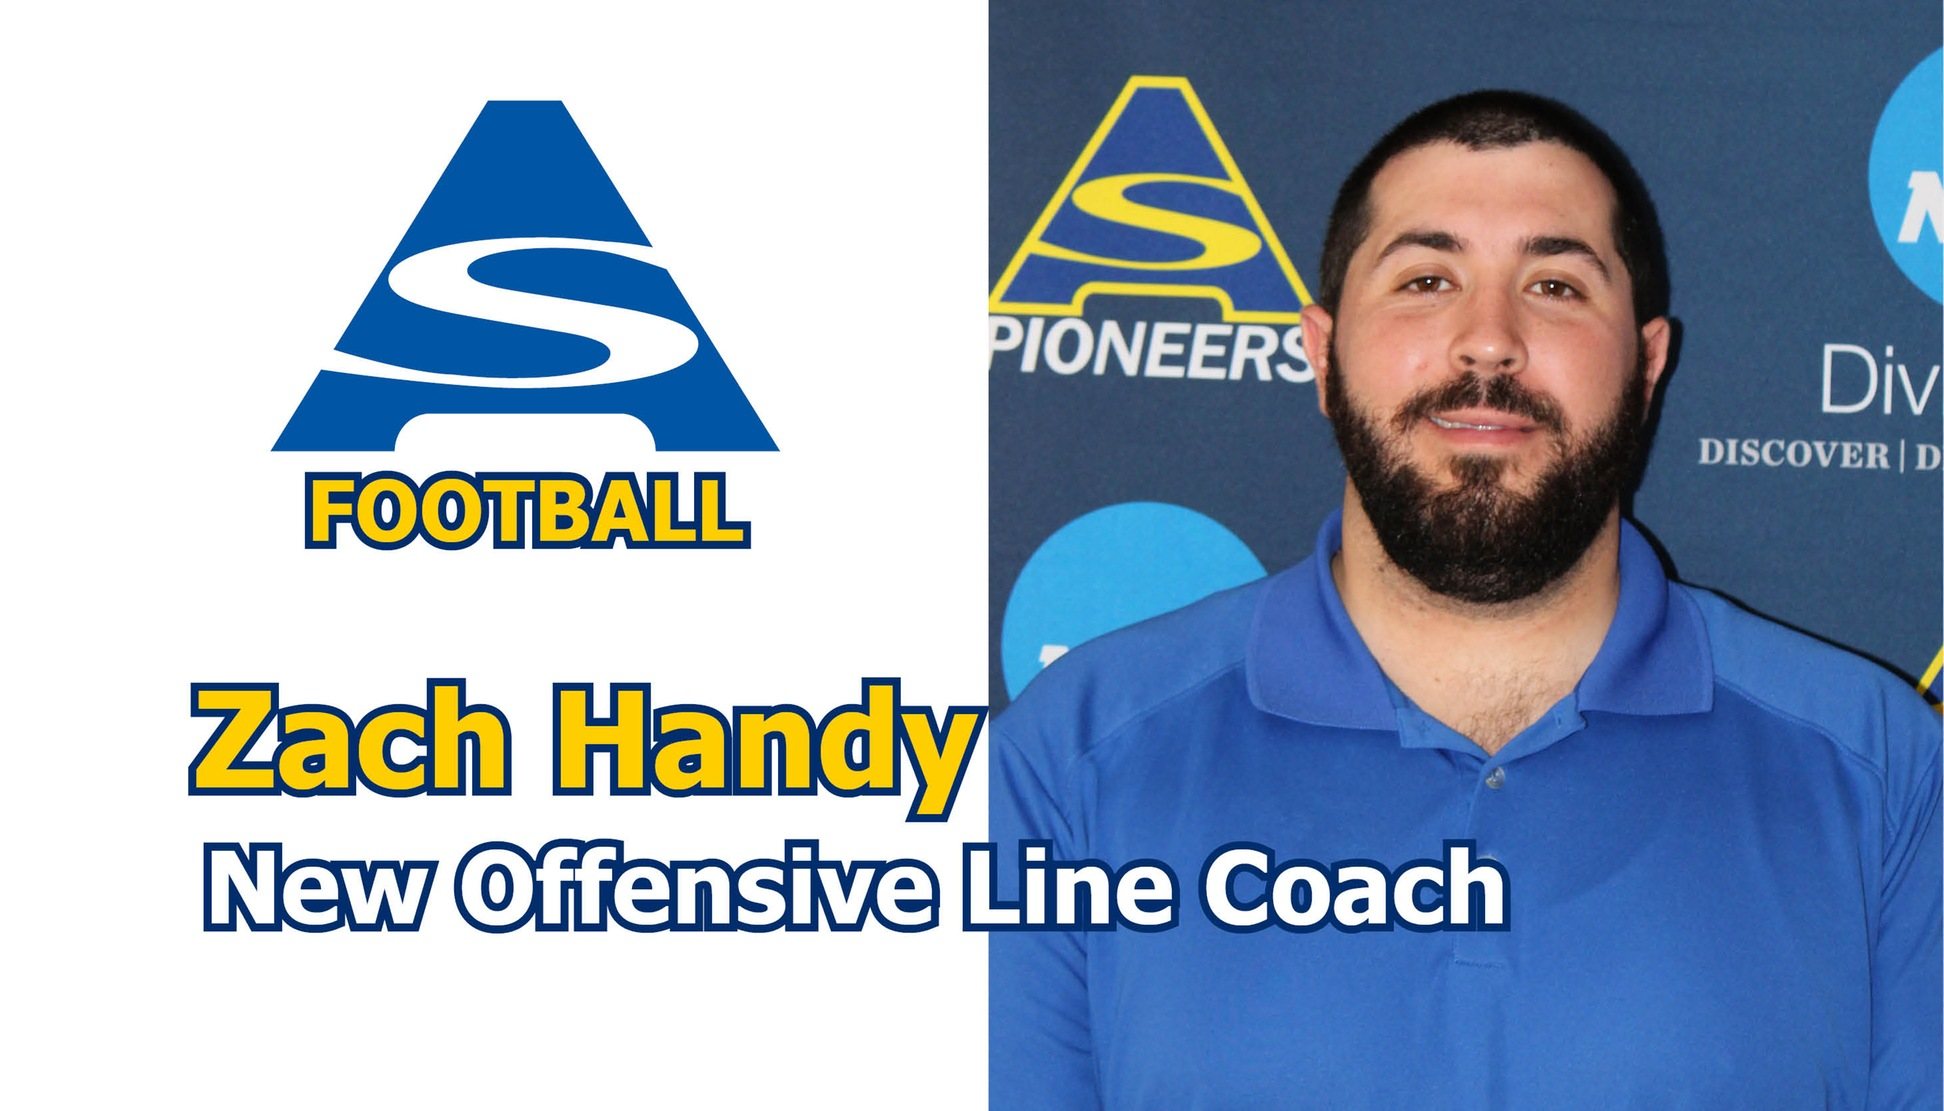 Zach Handy named new offensive line coach